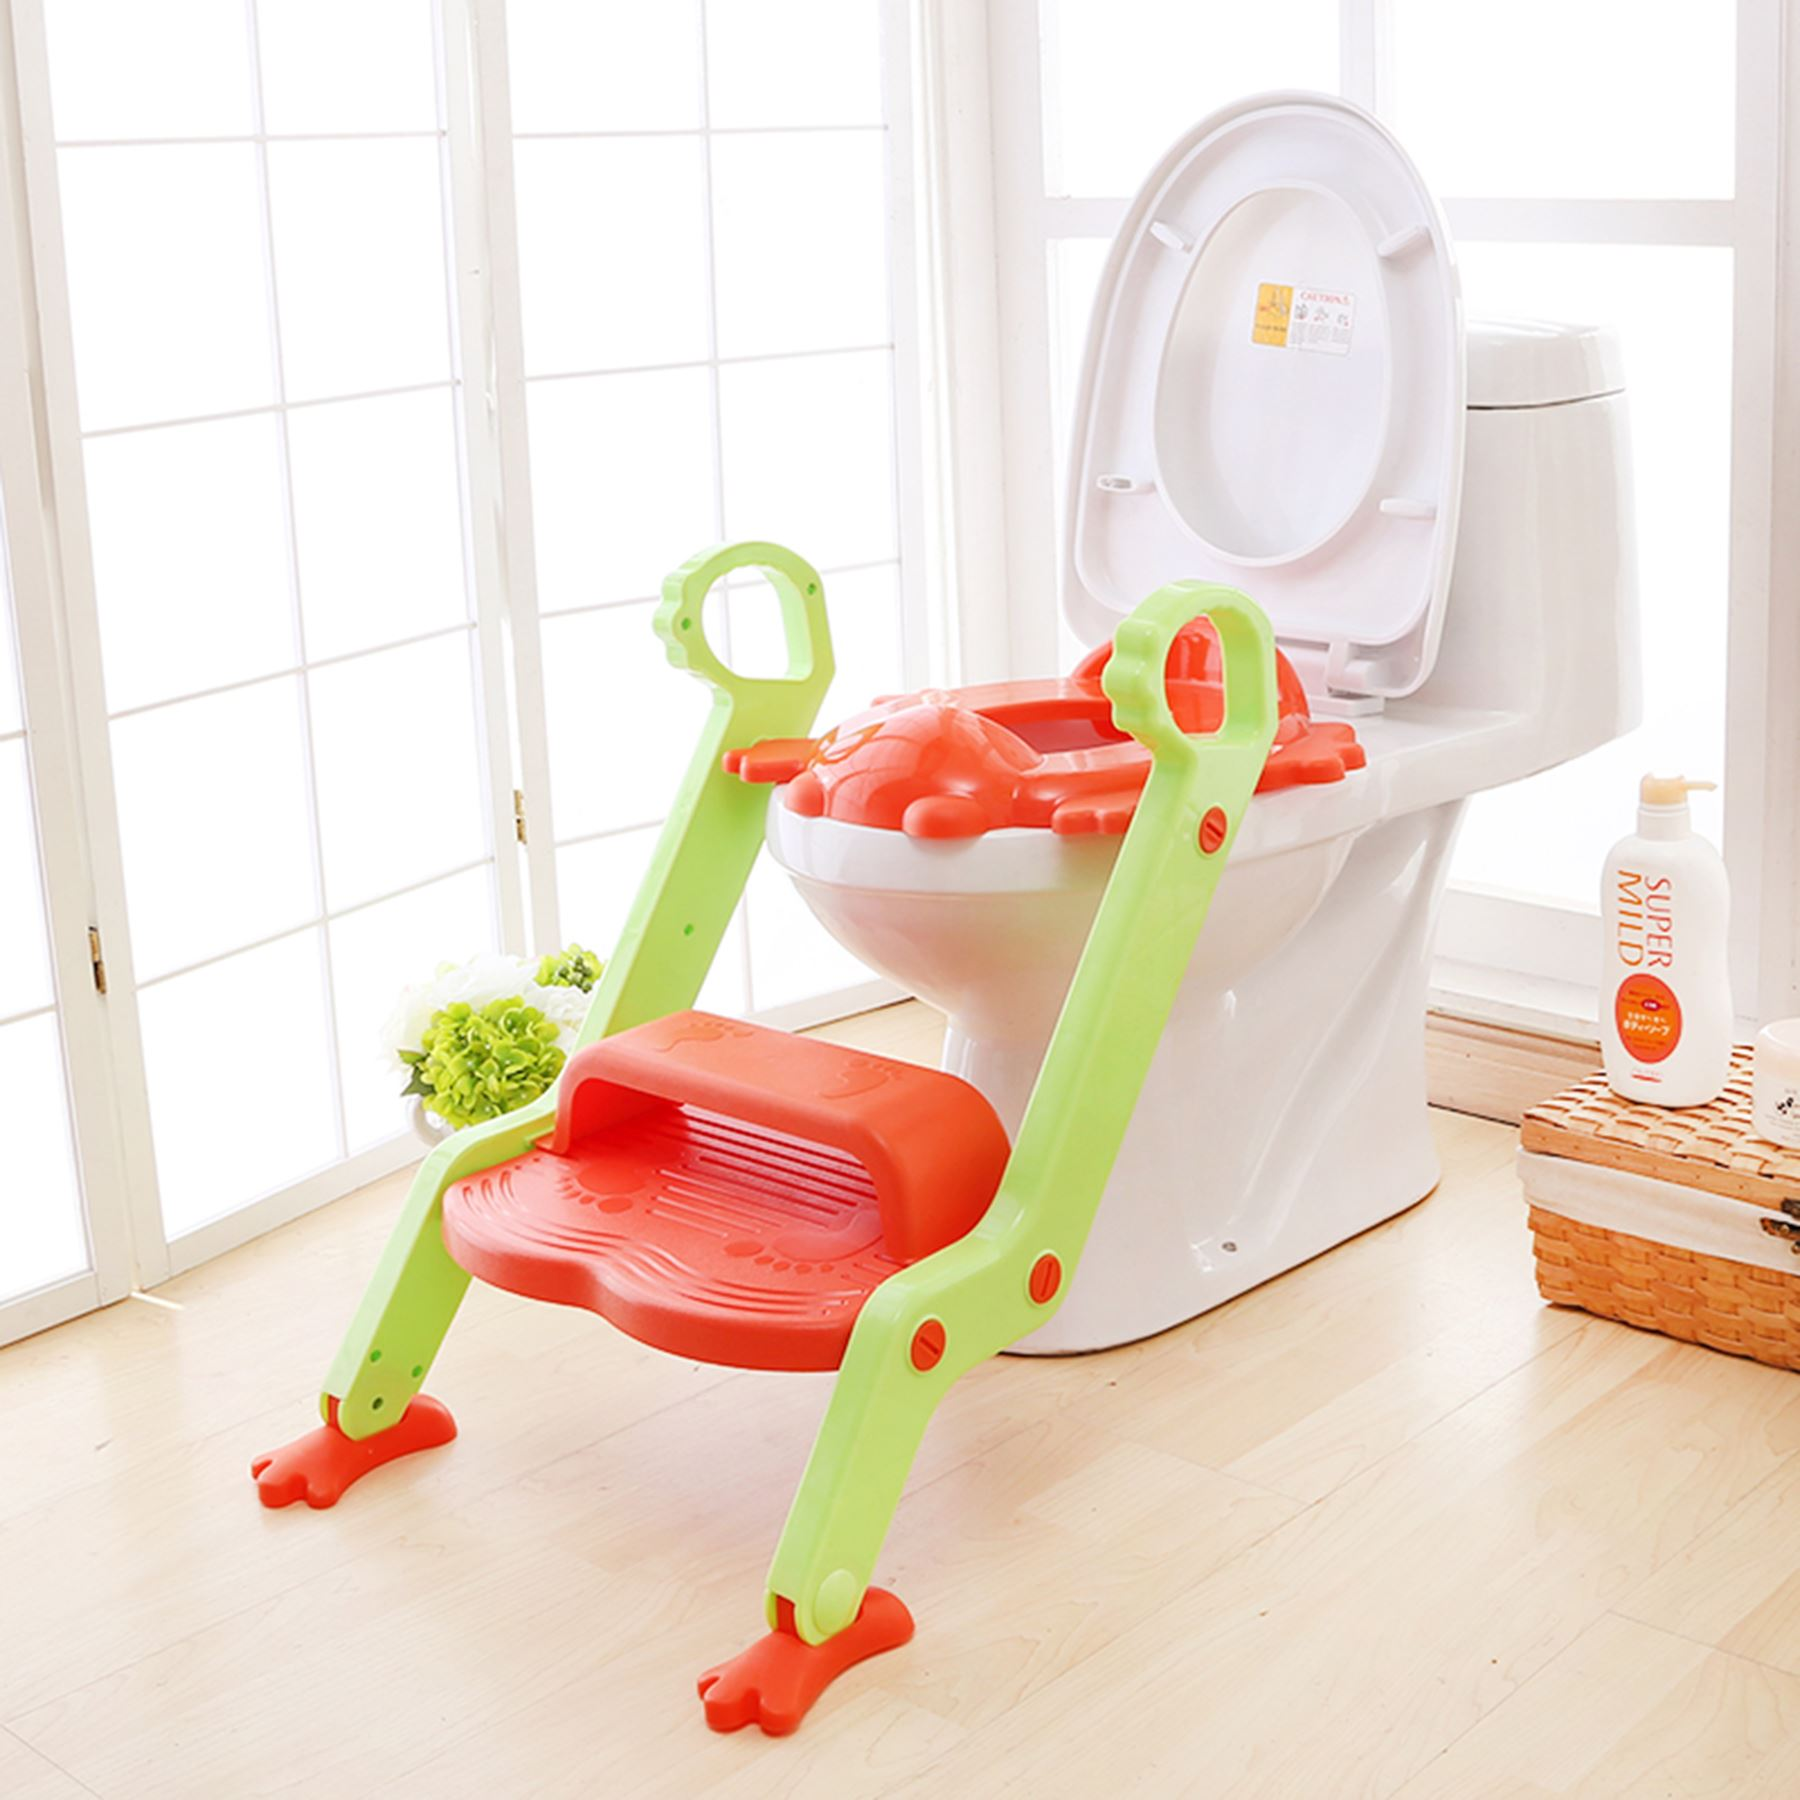 frog potty chair ipad stand for baby toddler toilet training seat 2 step ladder